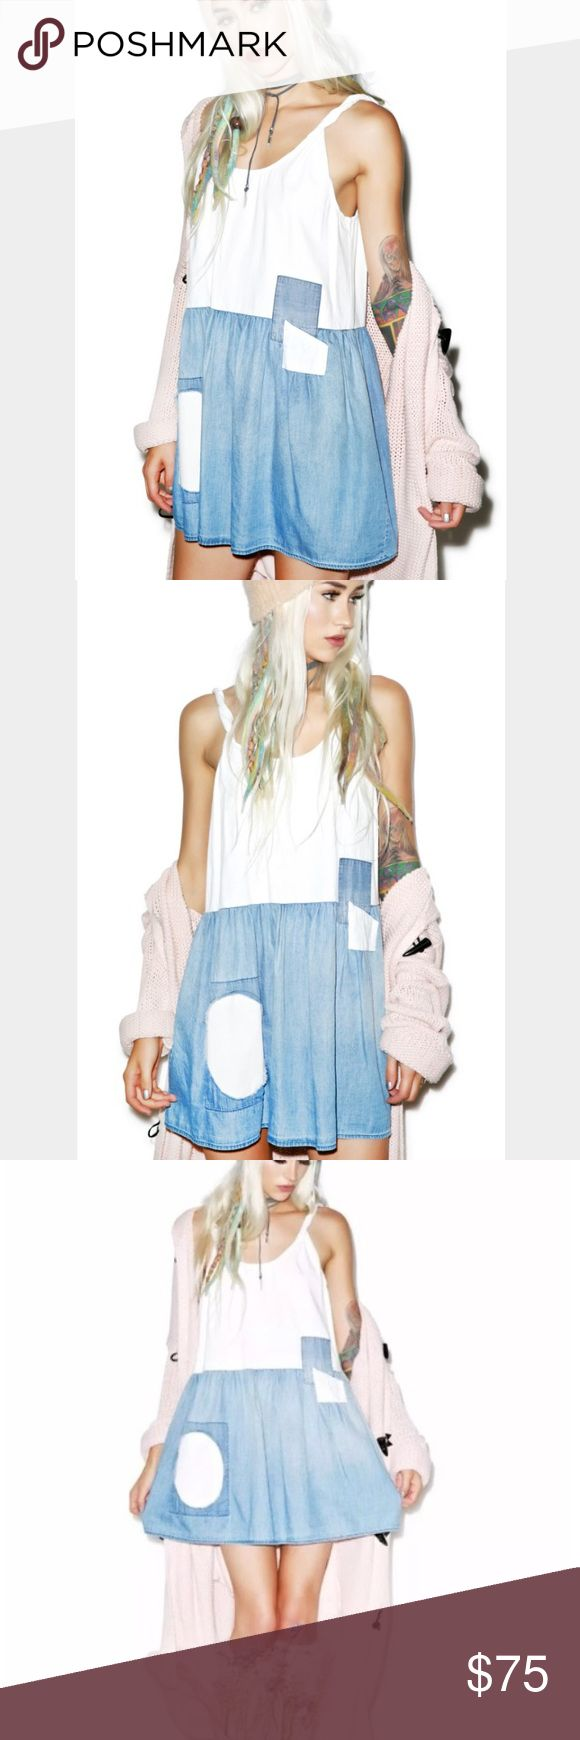 """WILDFOX CHAMBRAY PORT DRESS Denim Patch tank """"Wildfox Couture Chambray Port Dress yer gonna be ready for any adventure with this adorable sleeveless mini dress. With a roomy oversize fit perfect for layering, this fun bb has a super youthful feel. Featuring a gorgeous chambray skirt and vintage patch details, yer gonna look amazing."""" From dollskill - denim vintage patch twisted straps minidress tank. New with tags. Size large. Off white/ blue Wildfox Dresses Mini"""